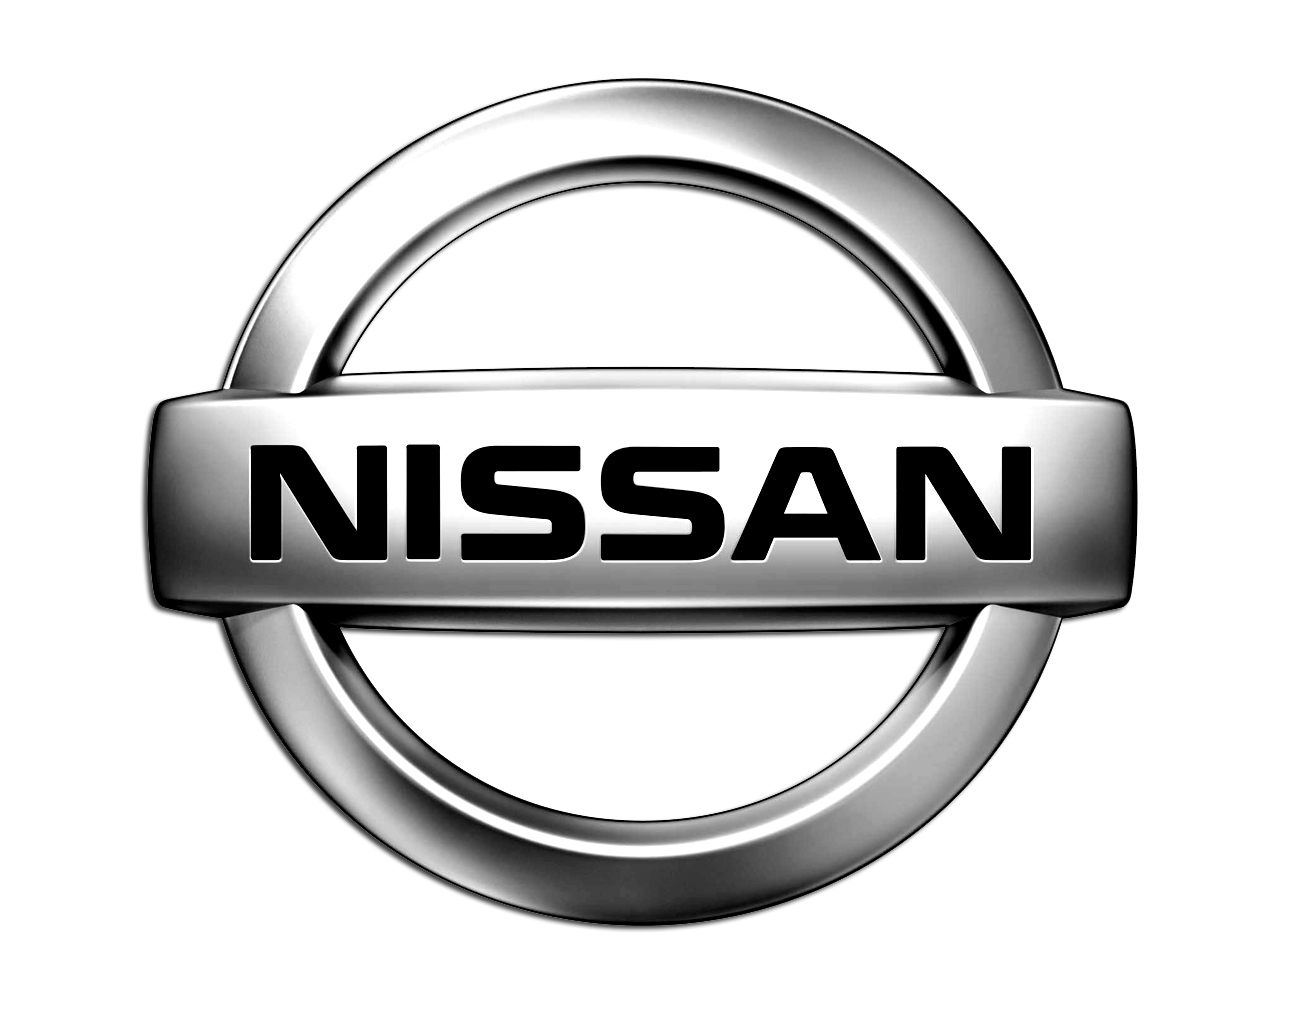 NISSAN -Innovation that excites-